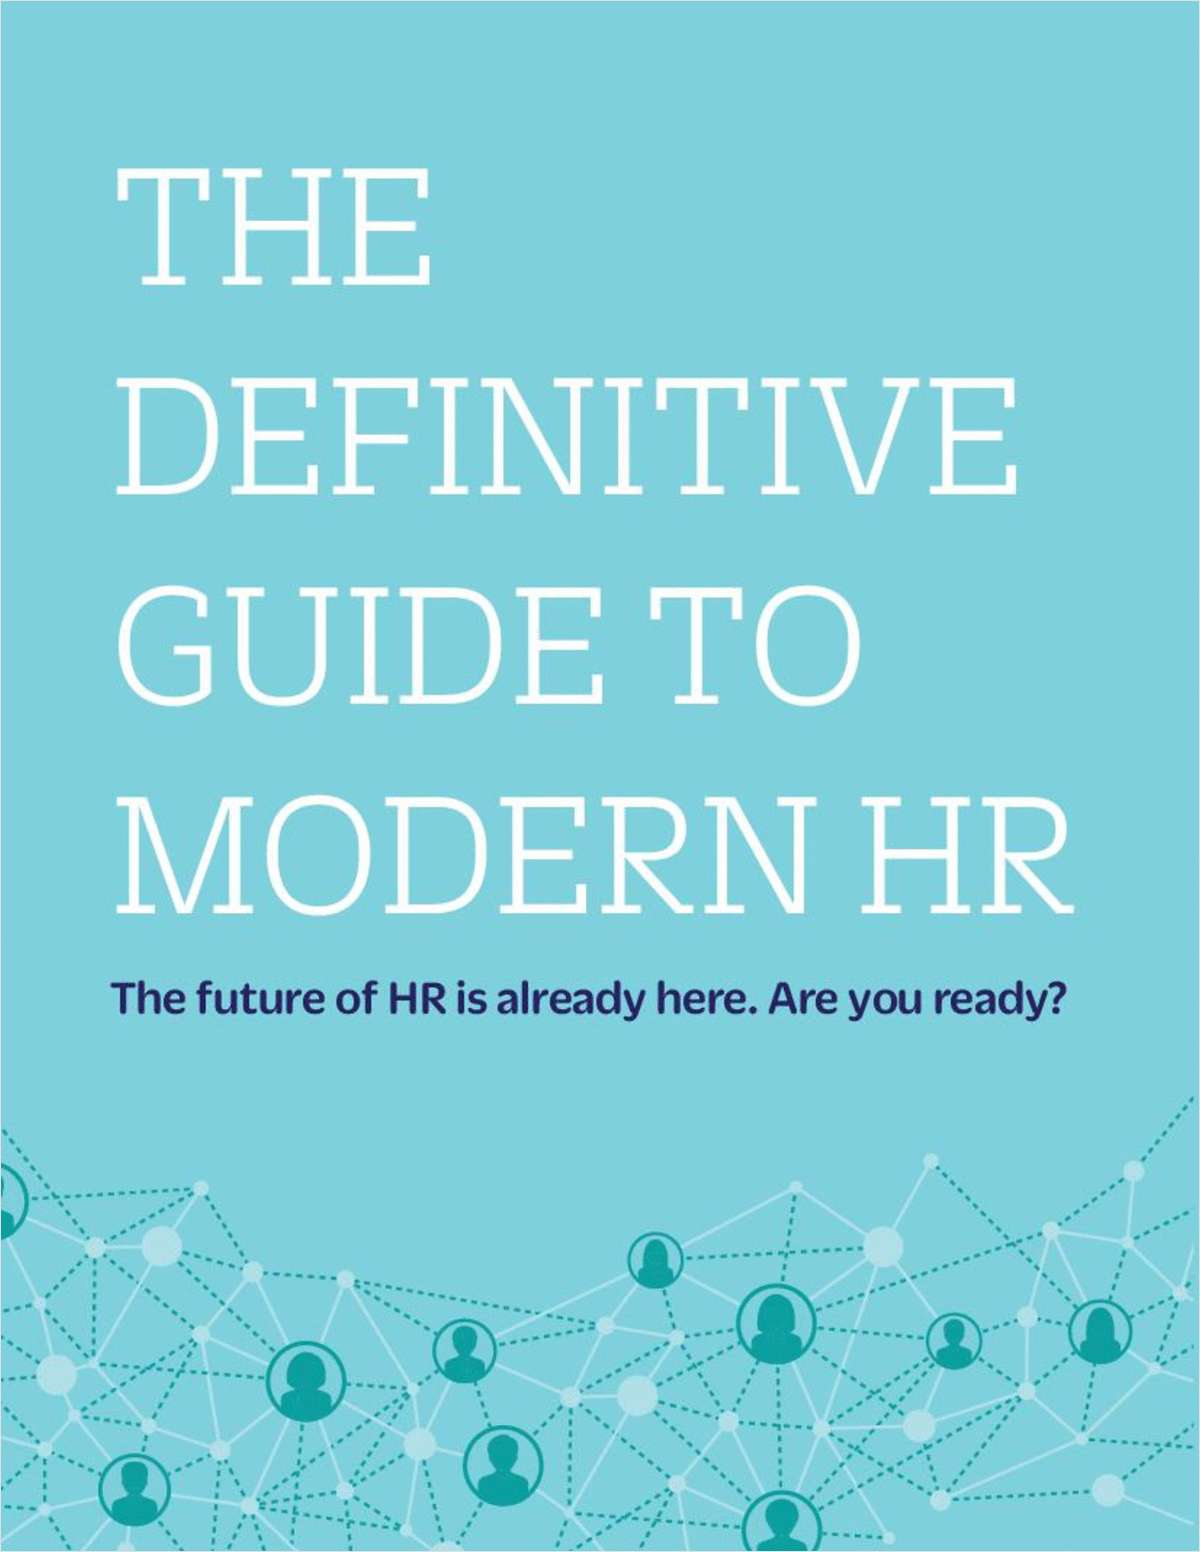 The Definitive Guide to Modern HR